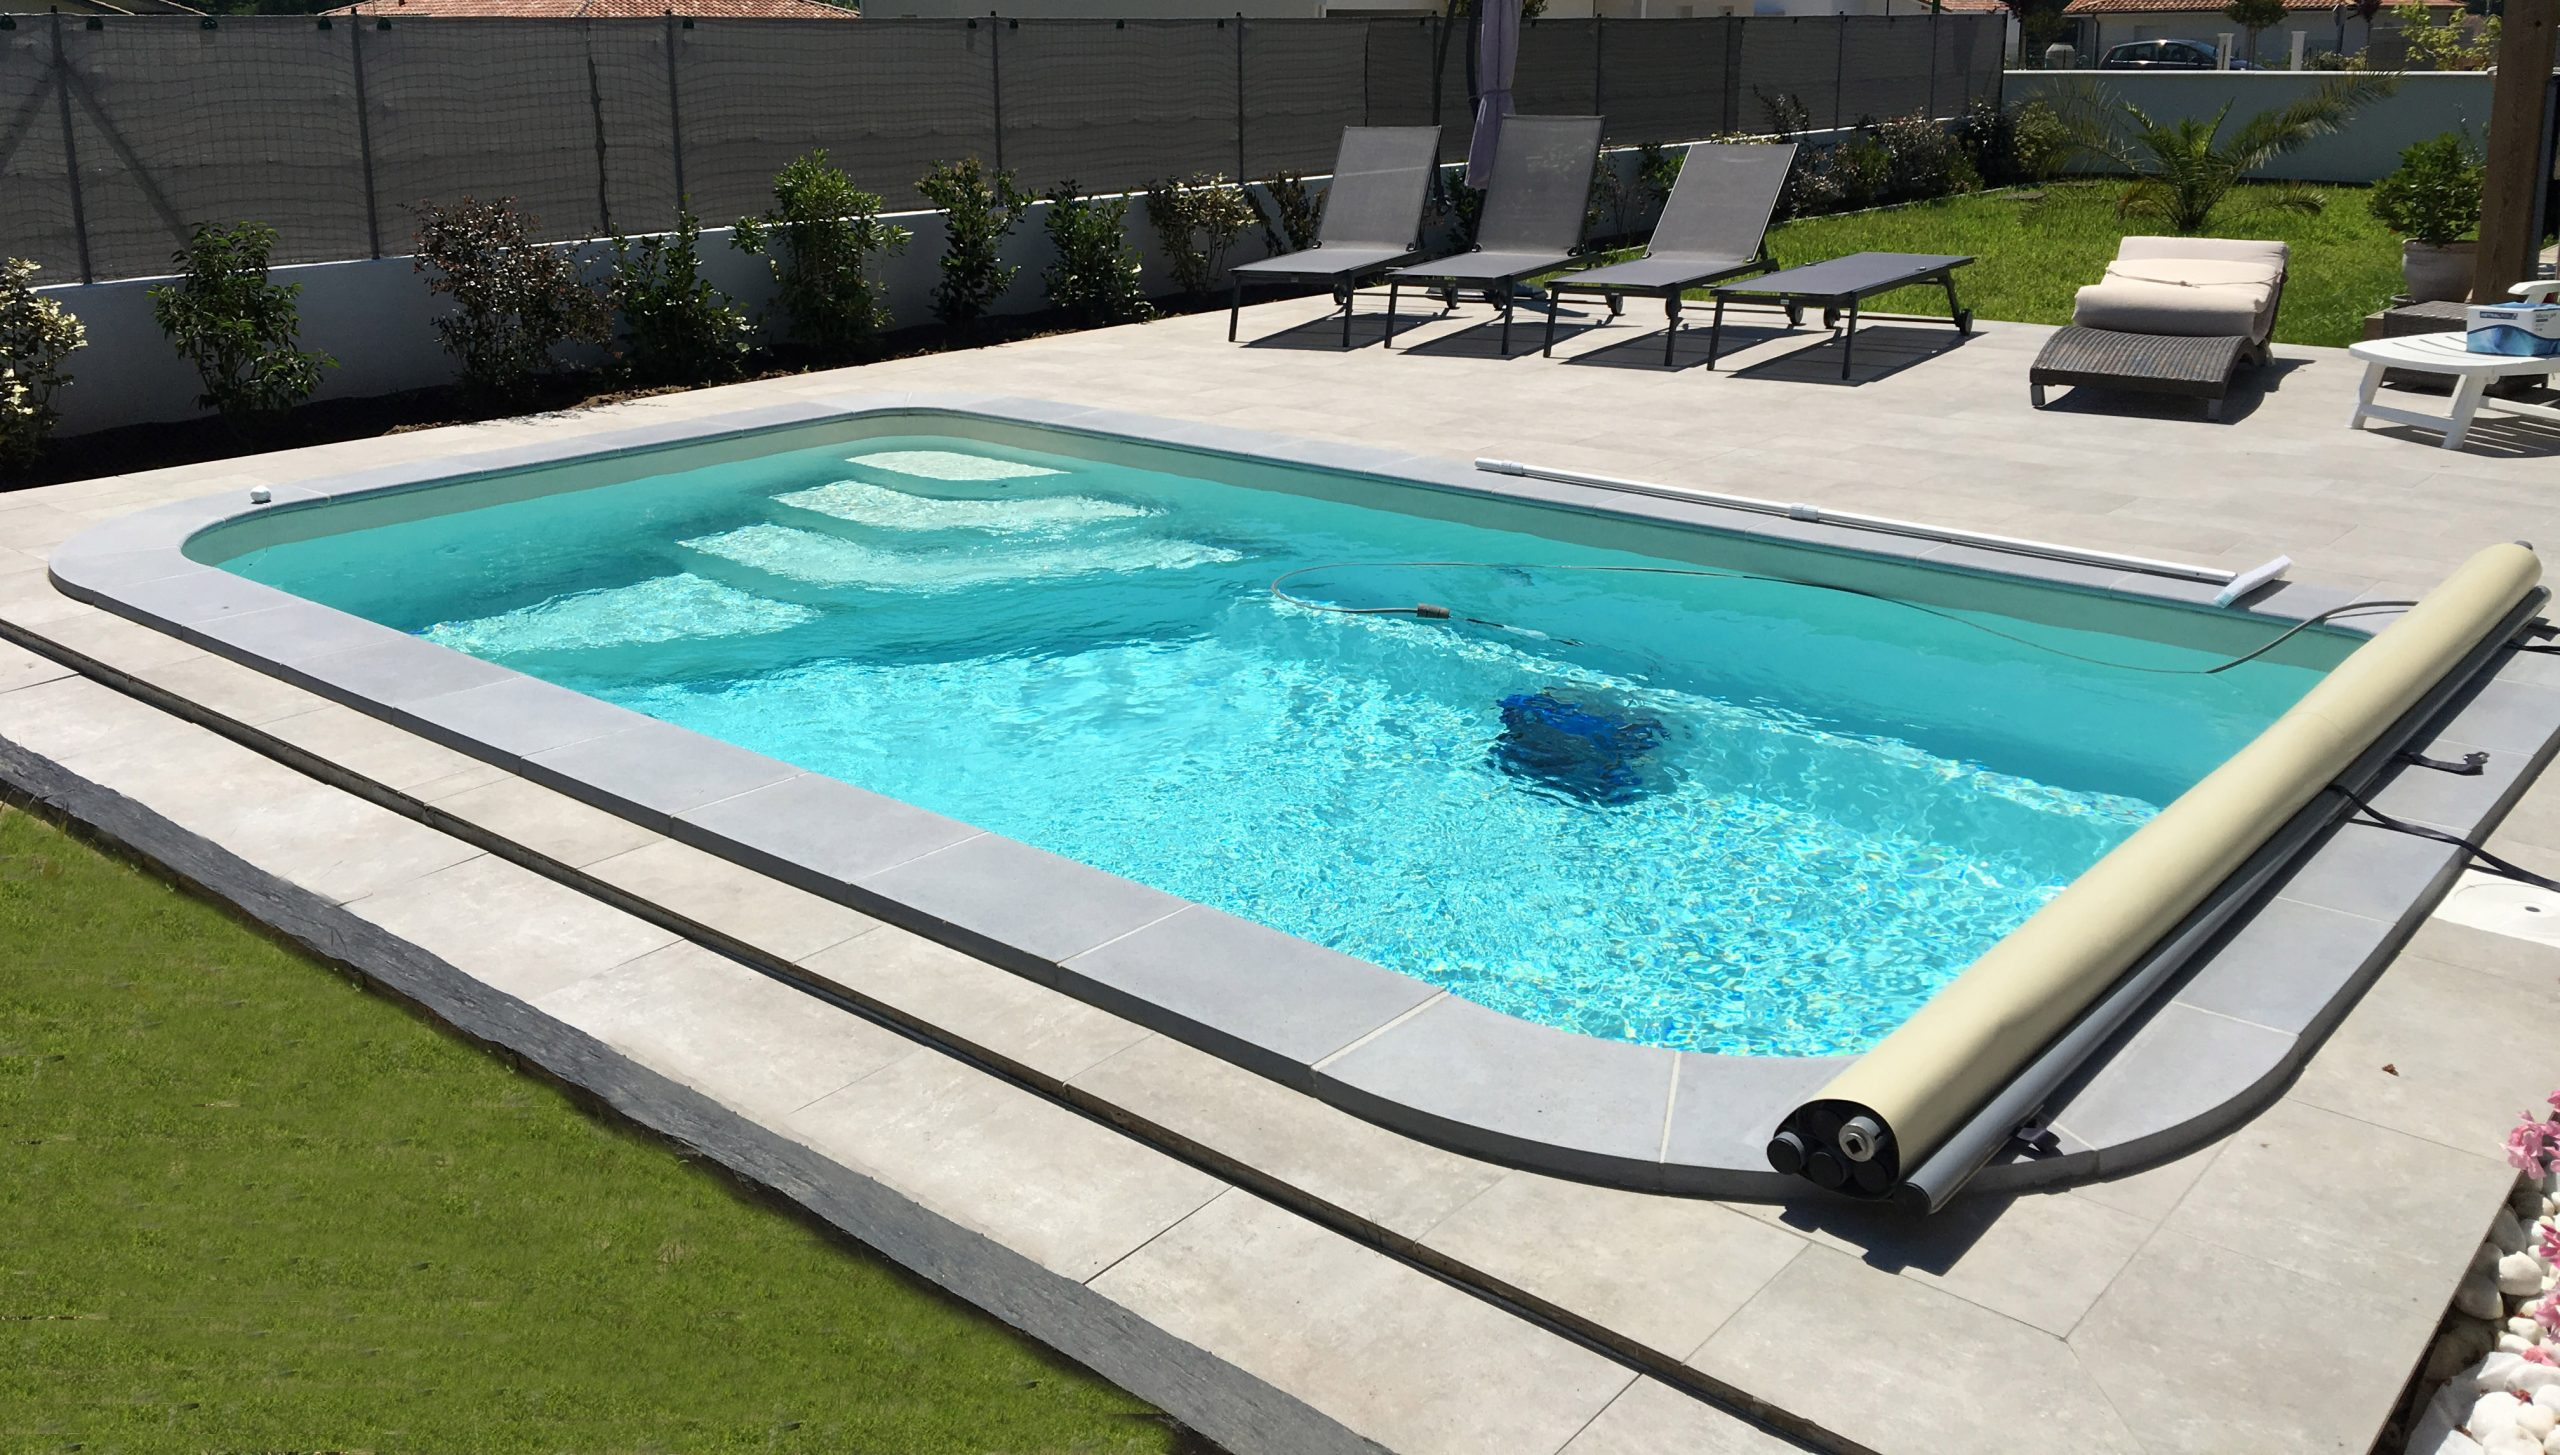 Coque Polyester Aboral - Apfm Piscines Distributeur Exclusif ... pour Aboral Piscine